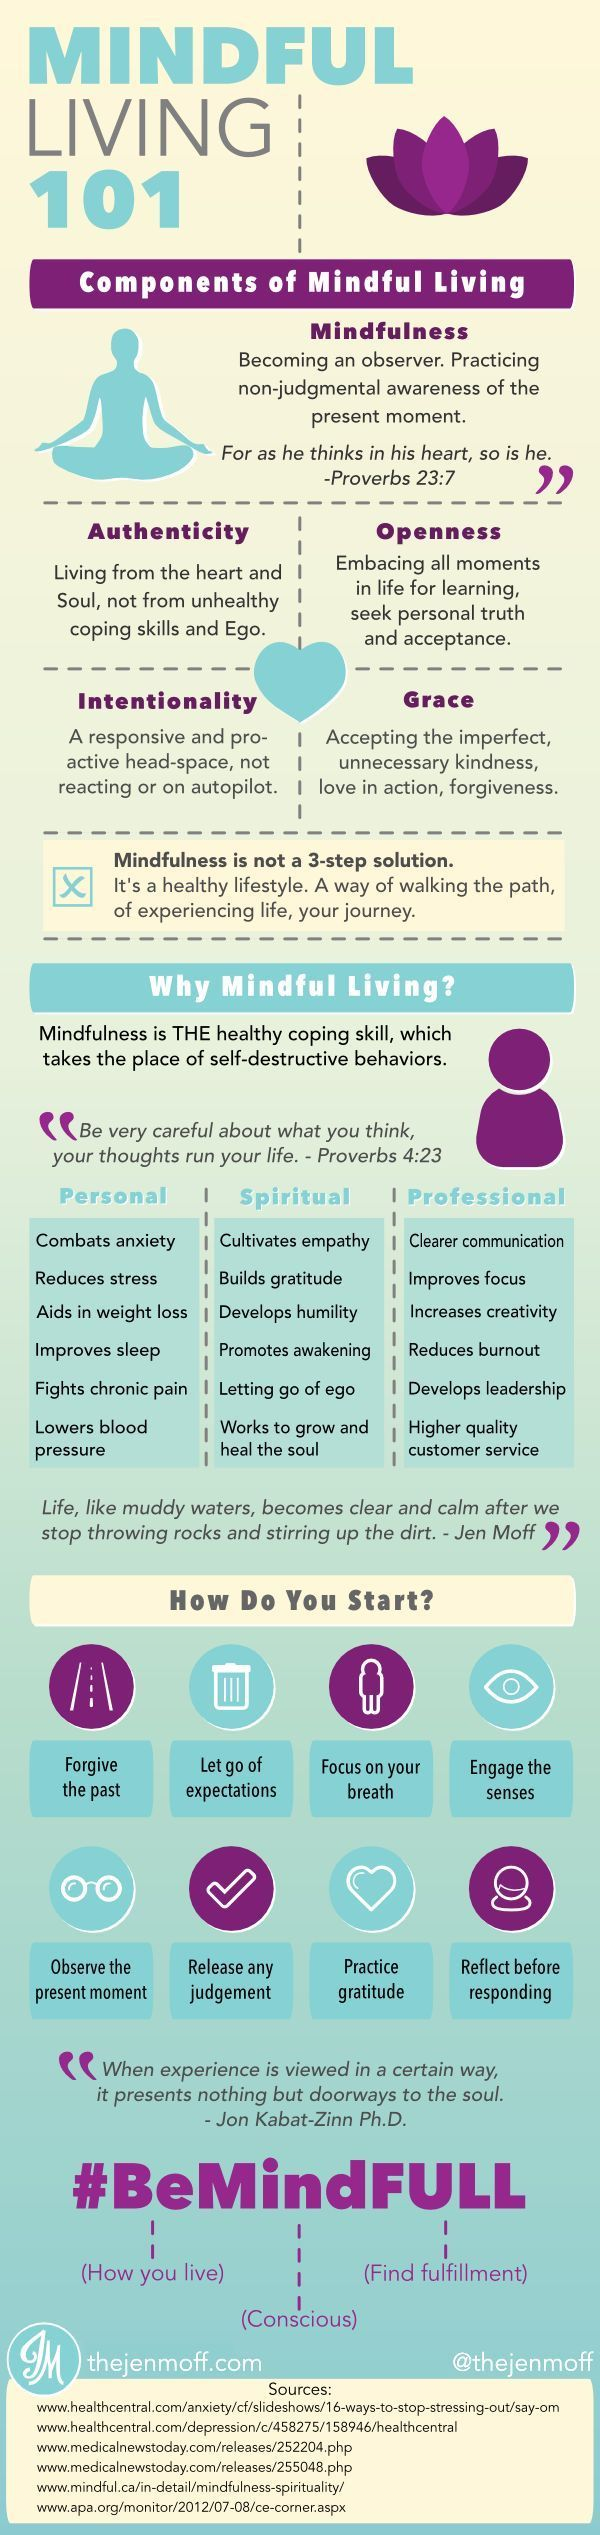 On #mindful living, #intention and #purpose